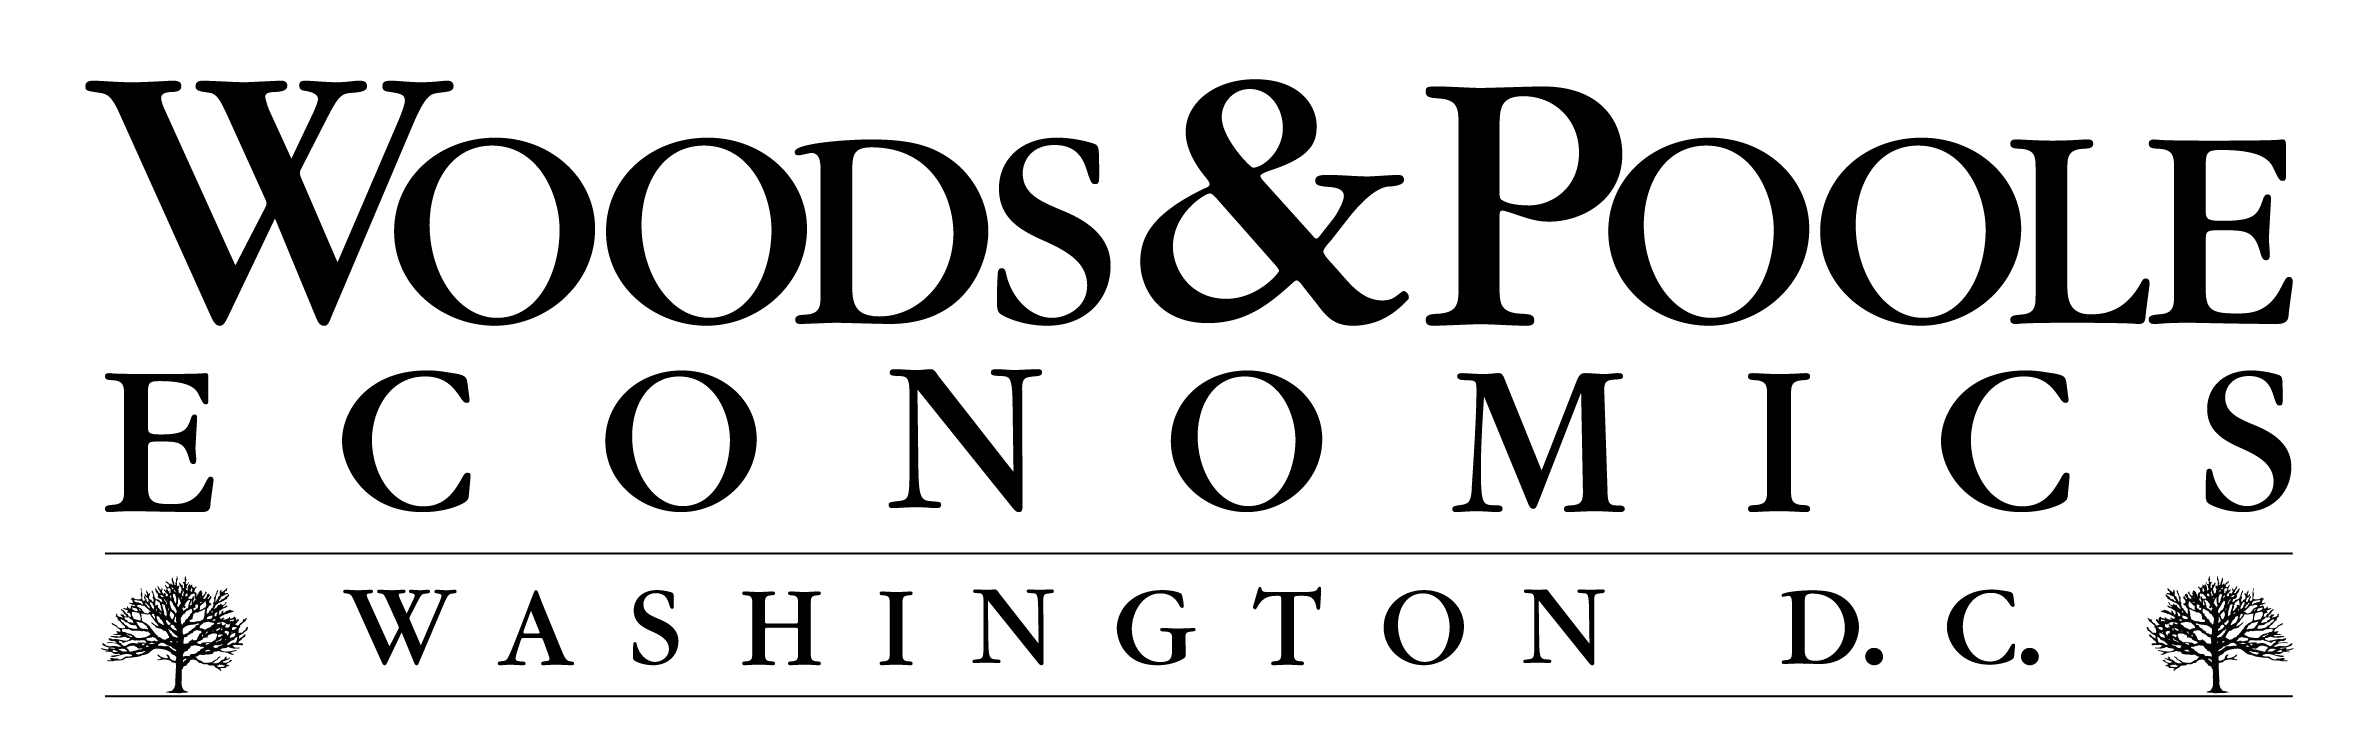 LYNCHBURG VA (FIPS 31340) | Woods & Poole Economics, Inc